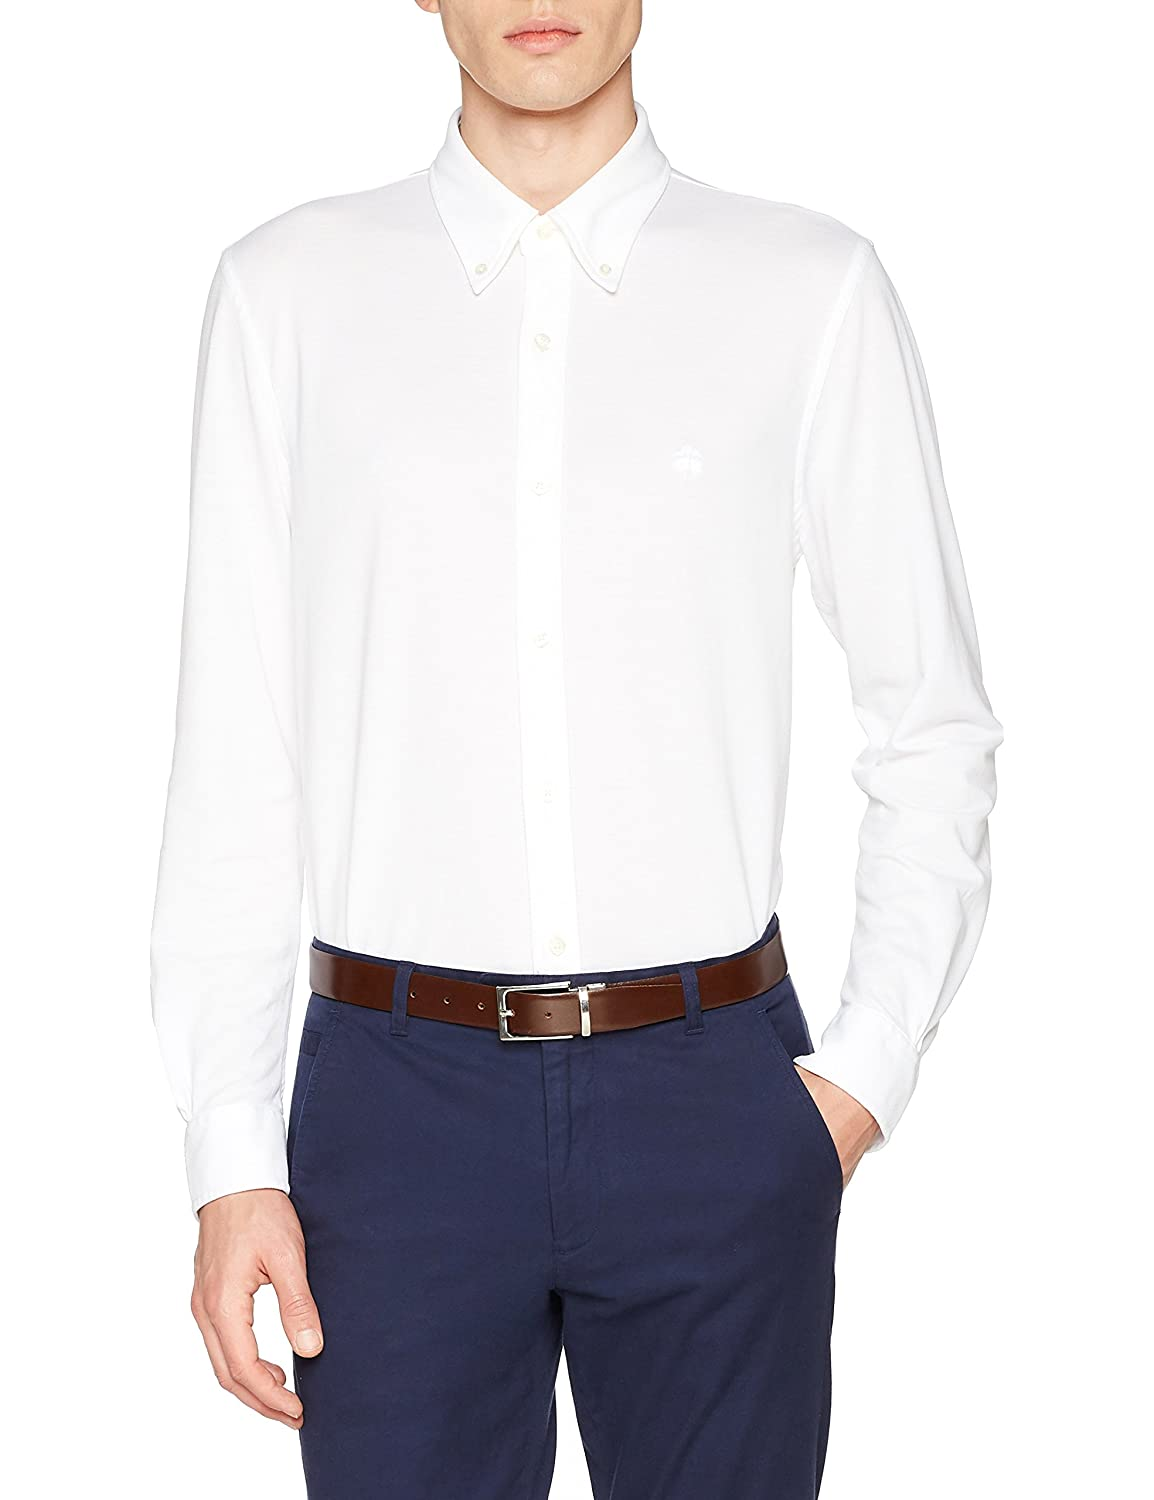 BROOKS BROTHERS Camicia Botton Down Oxford Pique, Camisa Casual para Hombre